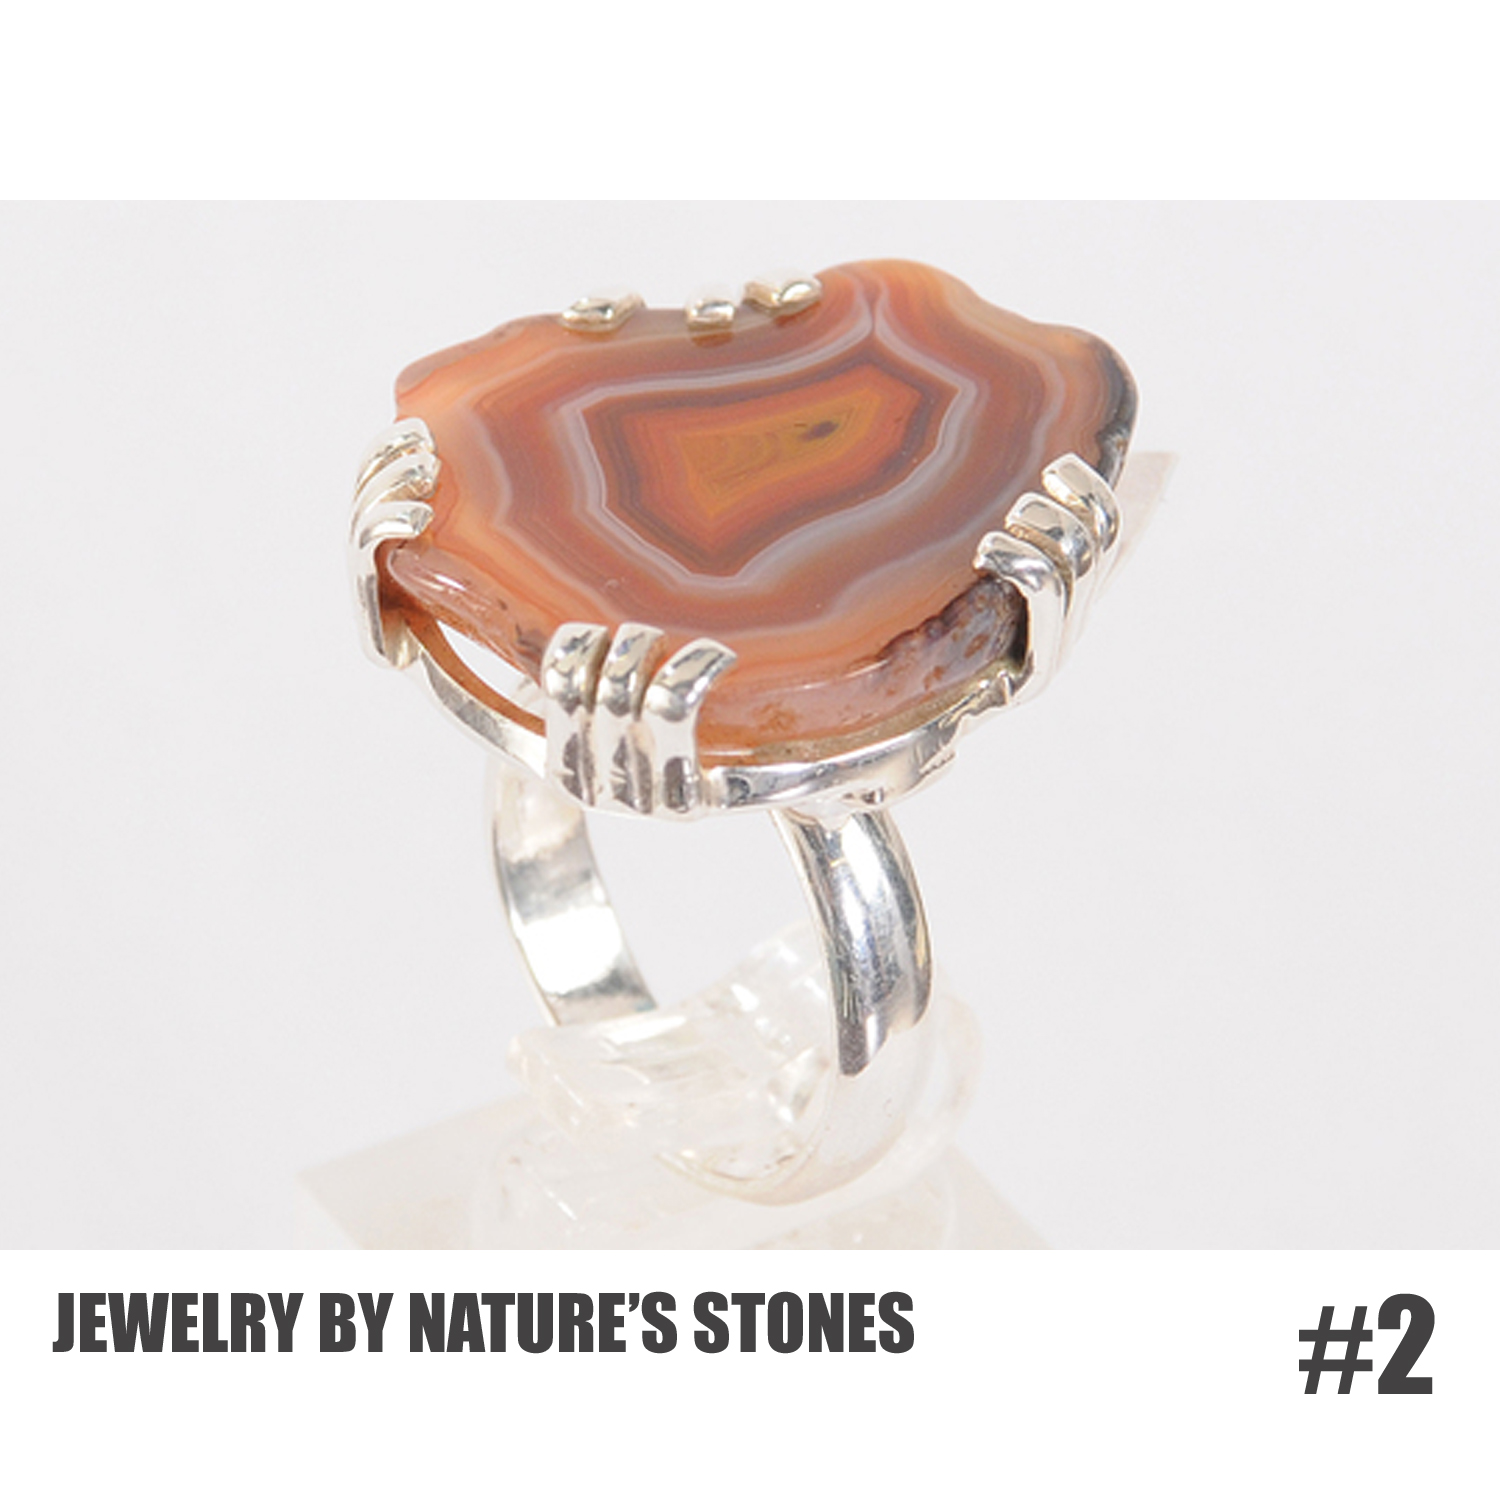 JEWELRY BY NATURES STONES.jpg